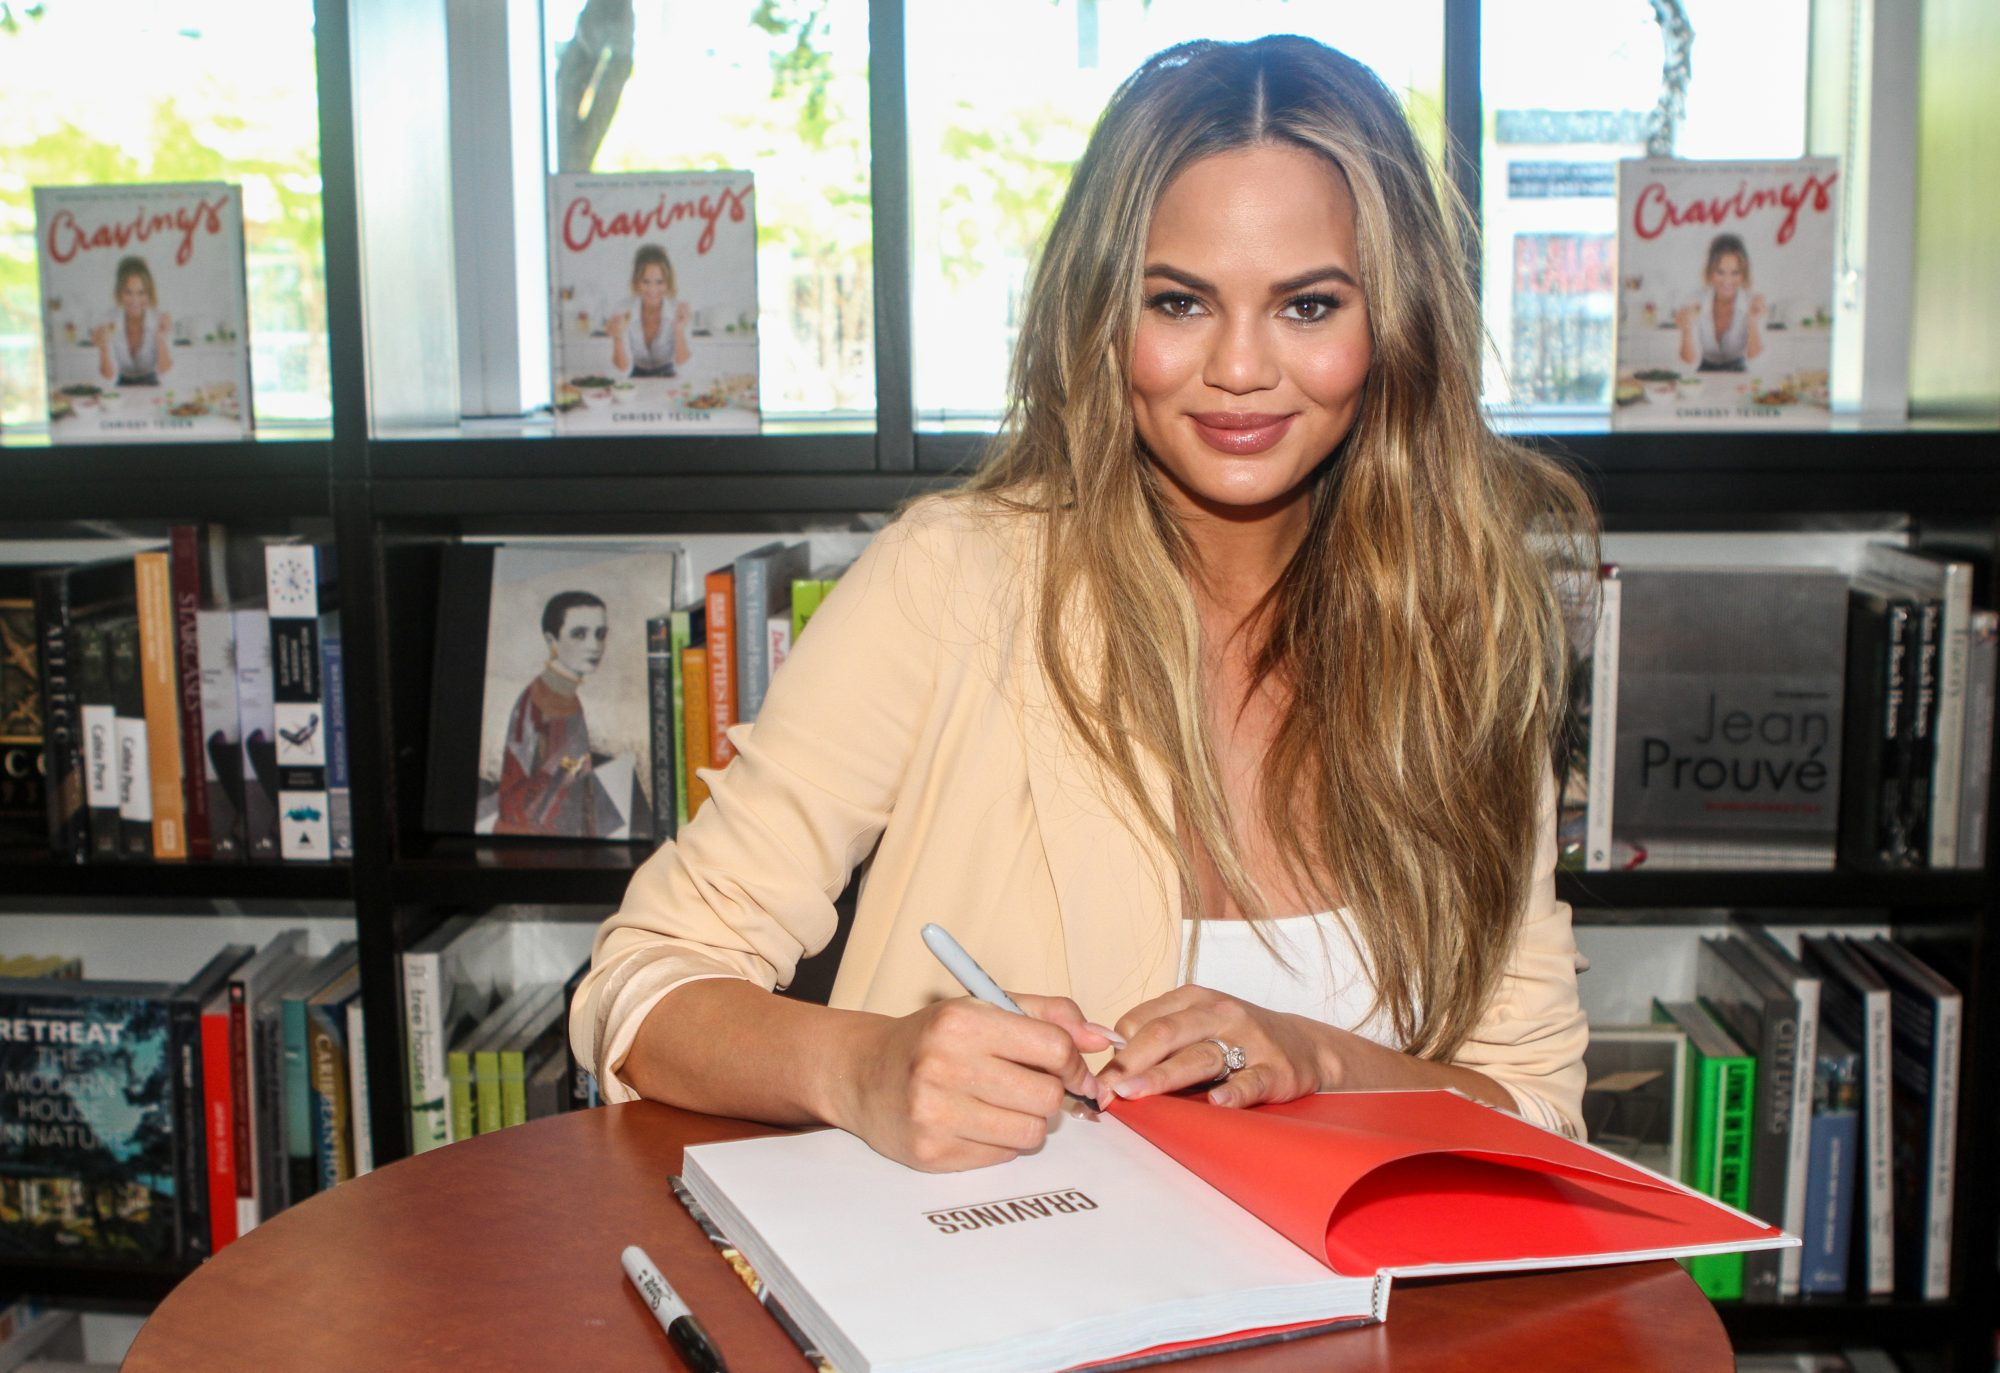 Chrissy Teigen Is a Culinary Genius and the Haters Can Back Off